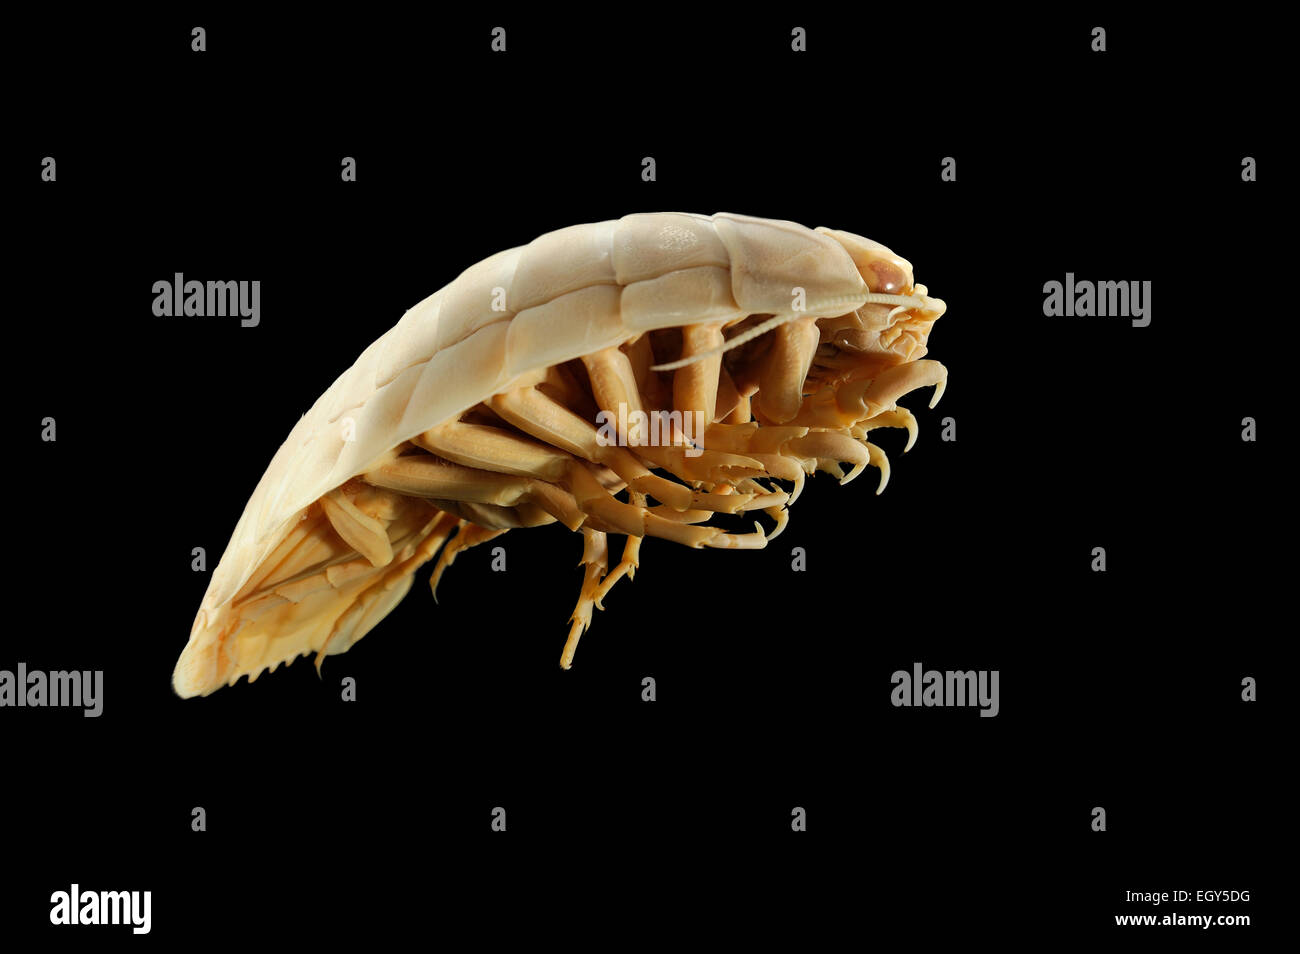 Giant Deep-Sea Isopod (Bathynomus c. f. giganteus), juv., Picture was taken in cooperation with the Zoological Museum - Stock Image